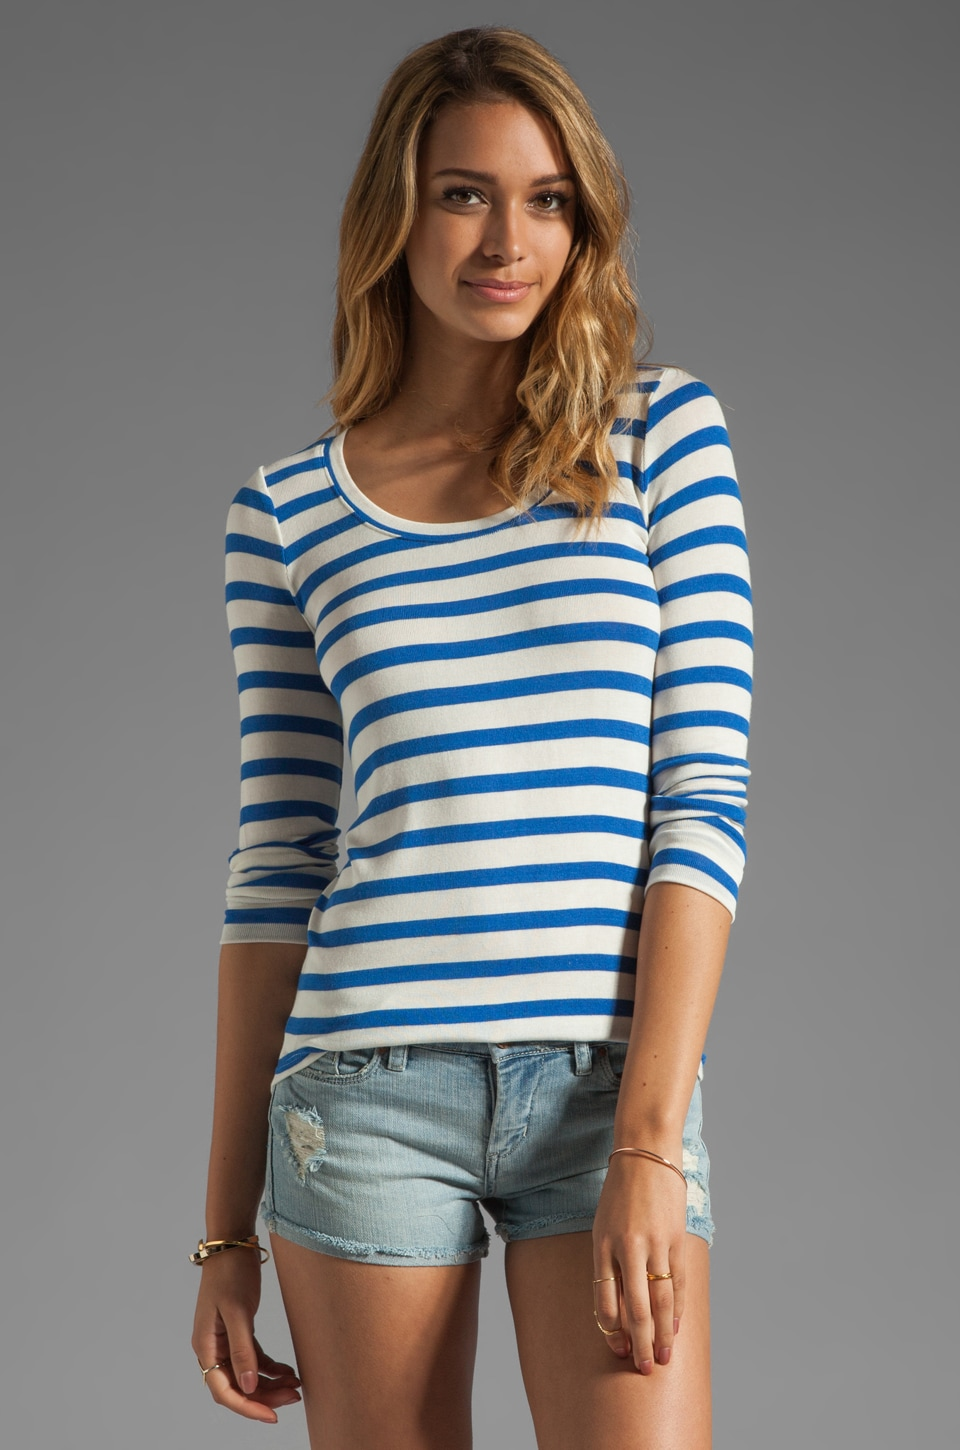 Whetherly Rosewood Bateau Stripe Tee in Blue/Creme